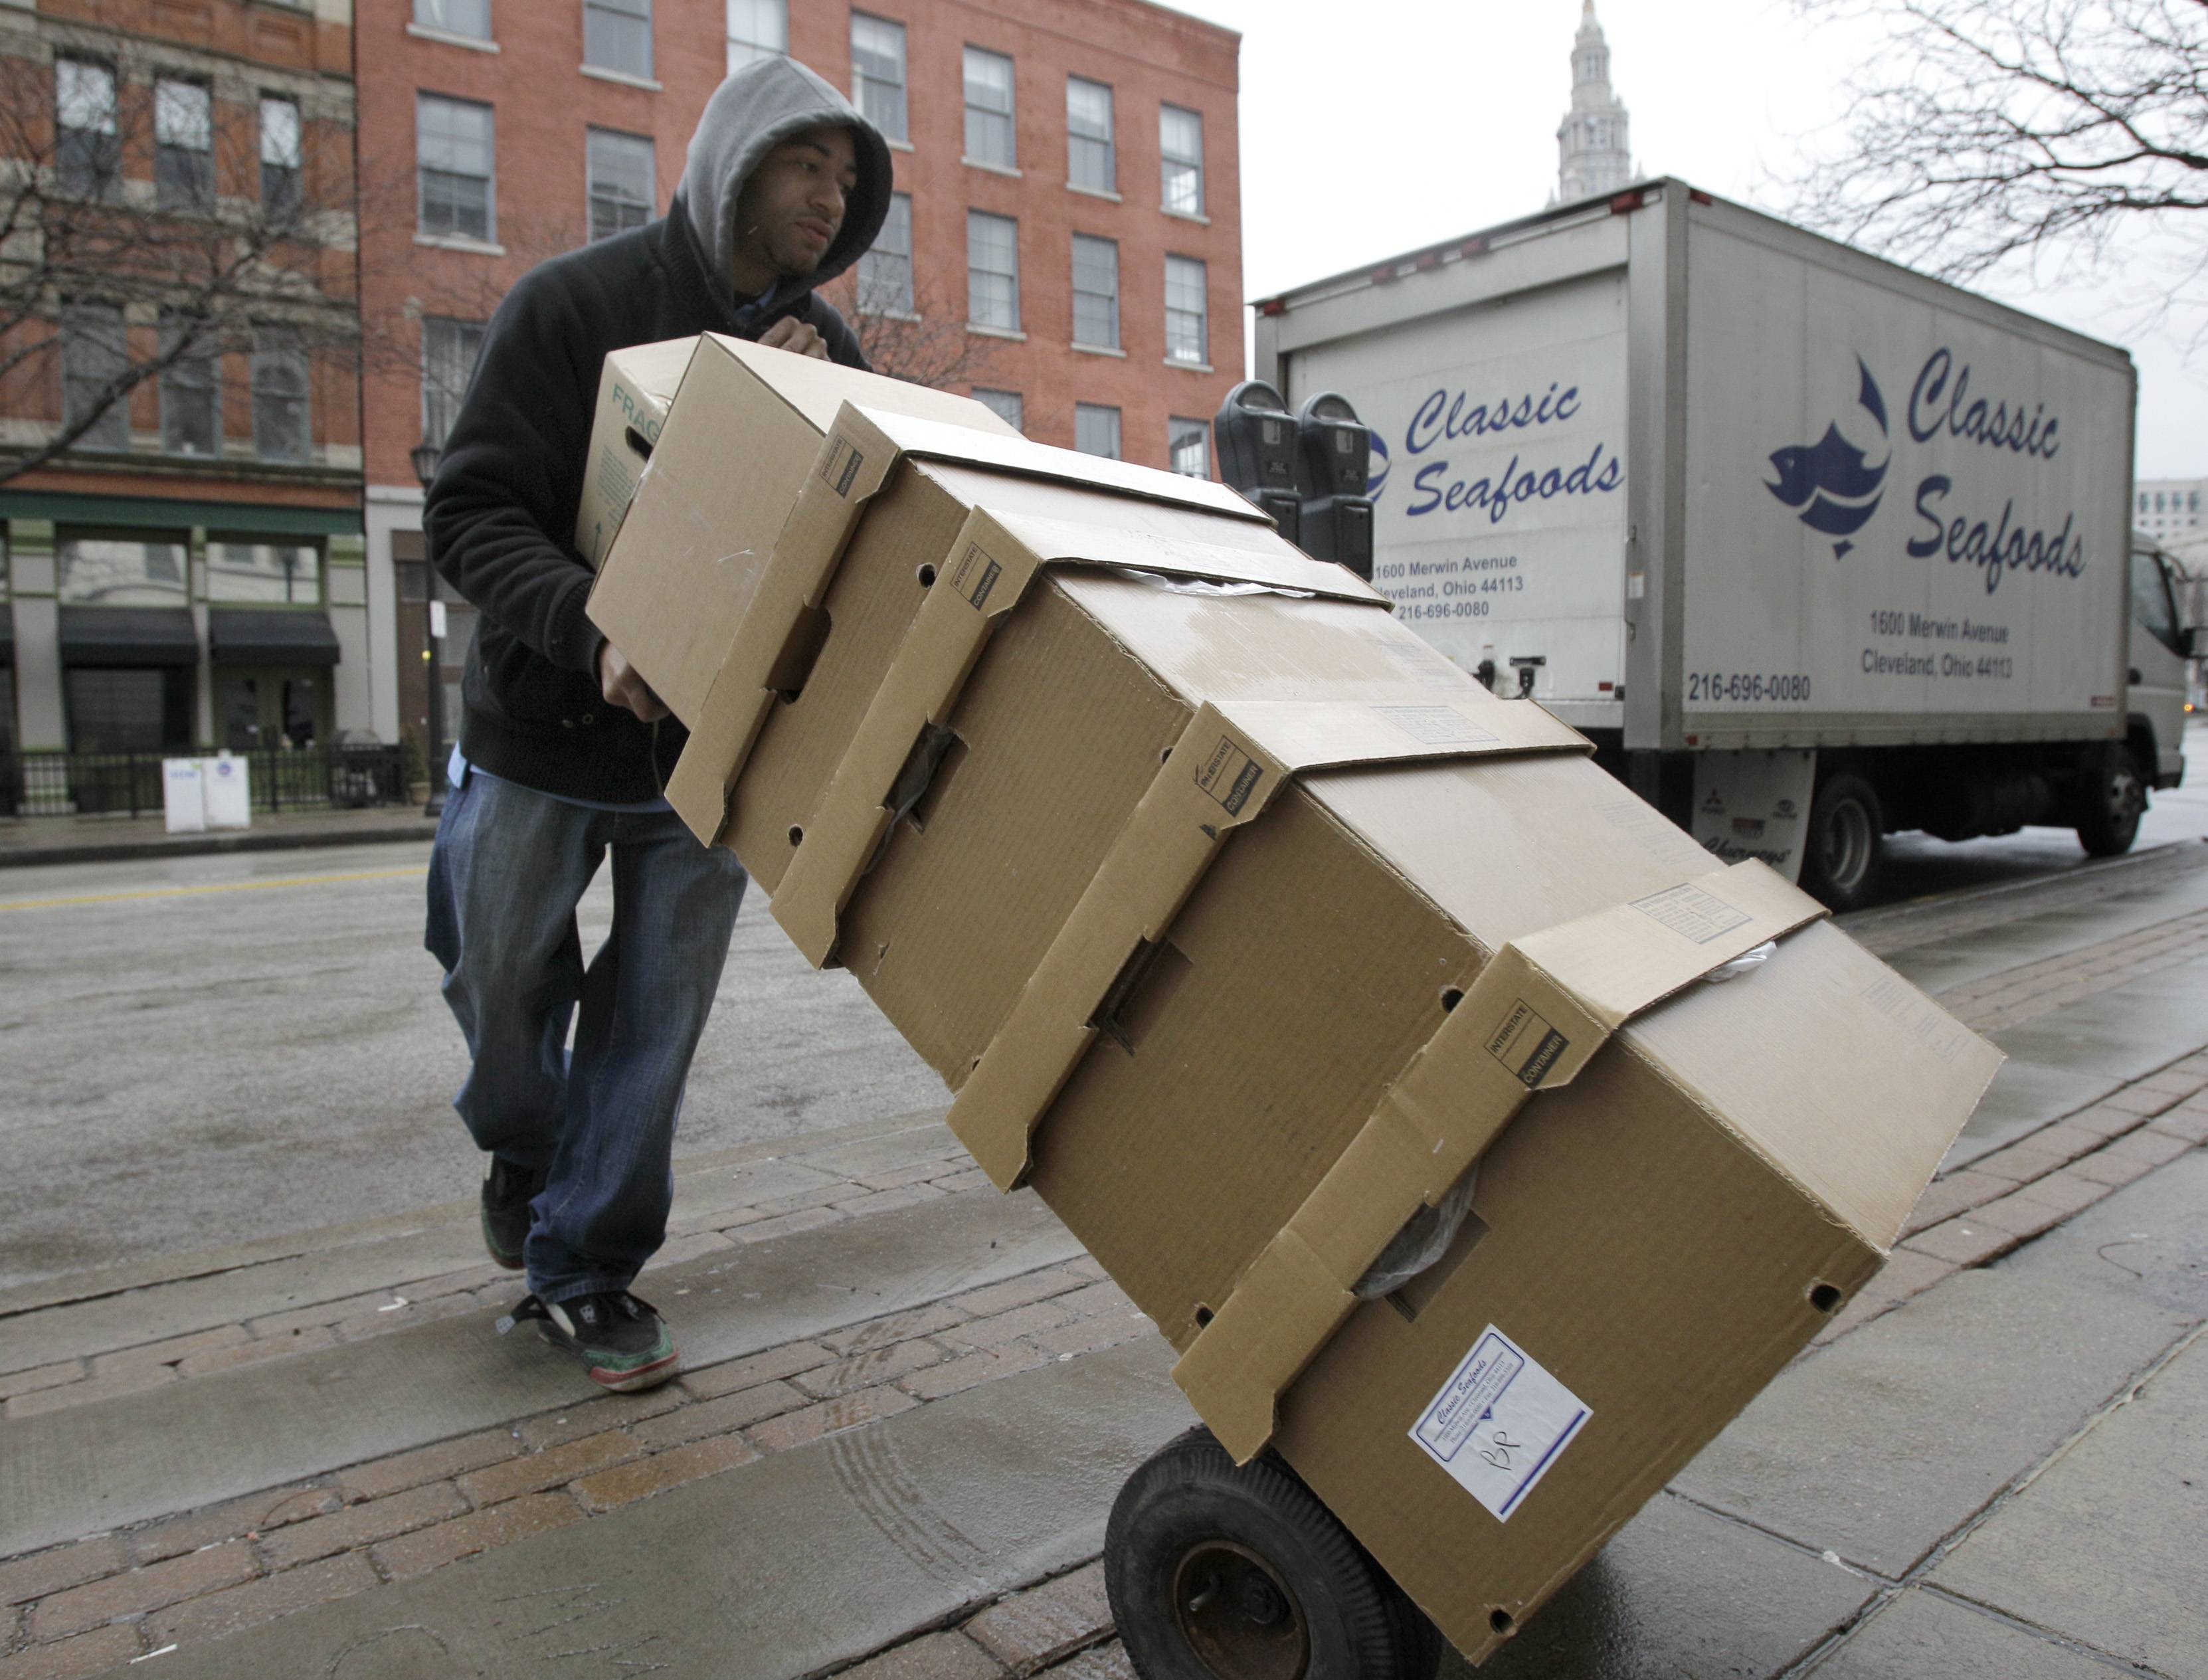 Desmond Wright delivers a dolly load of seafood from wholesaler Classic Seafood to a restaurant in Cleveland on Wednesday.